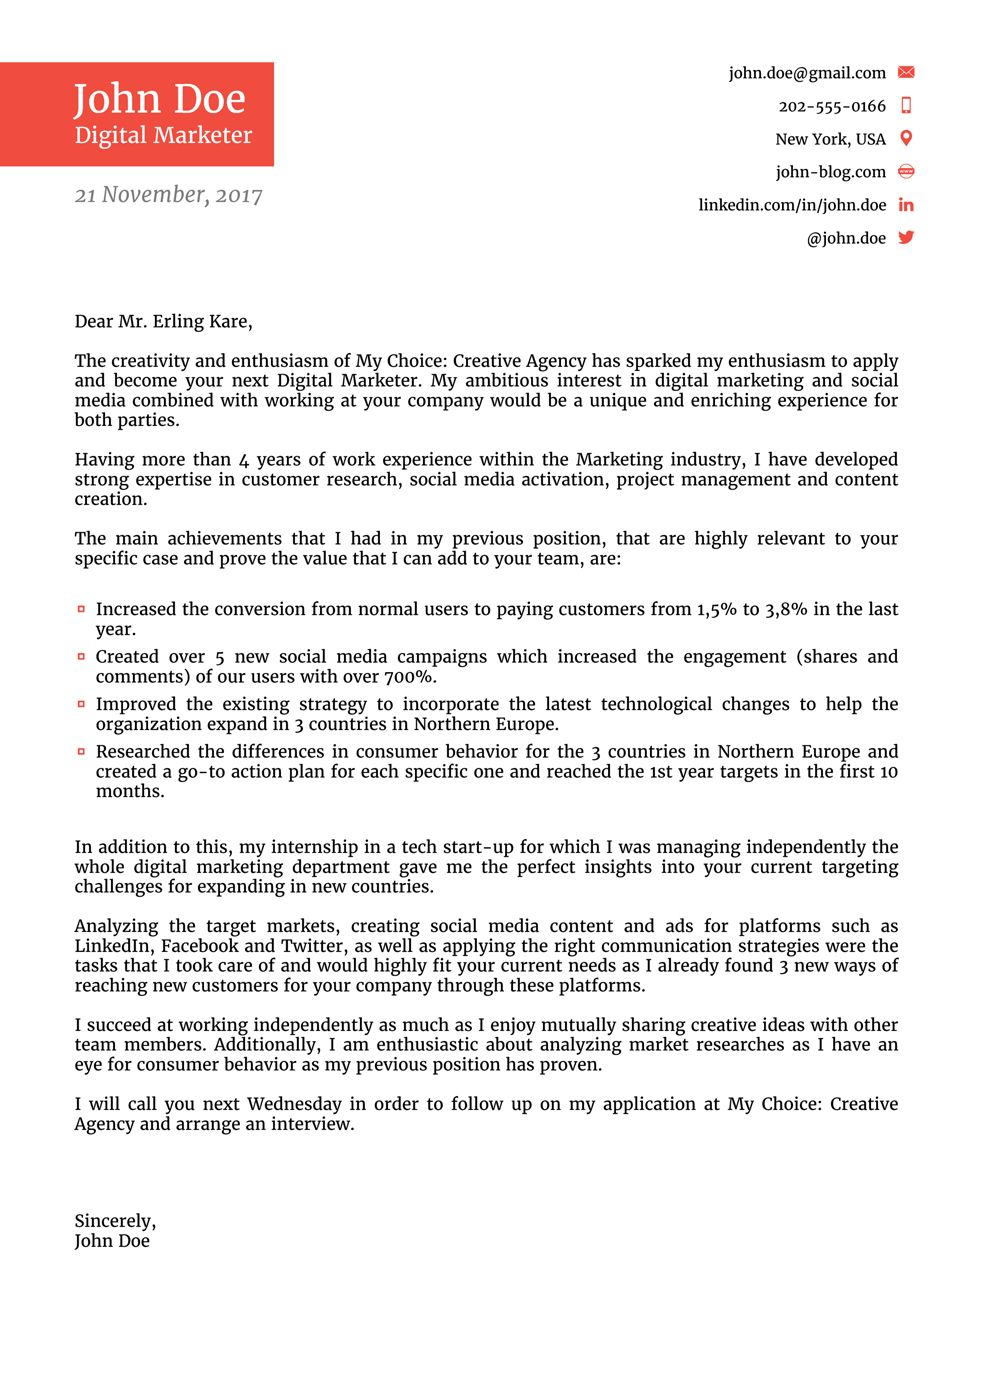 25 How To Write A Cover Letter For A Job Application In 2020 Job Cover Letter Cover Letter For Resume Writing A Cover Letter